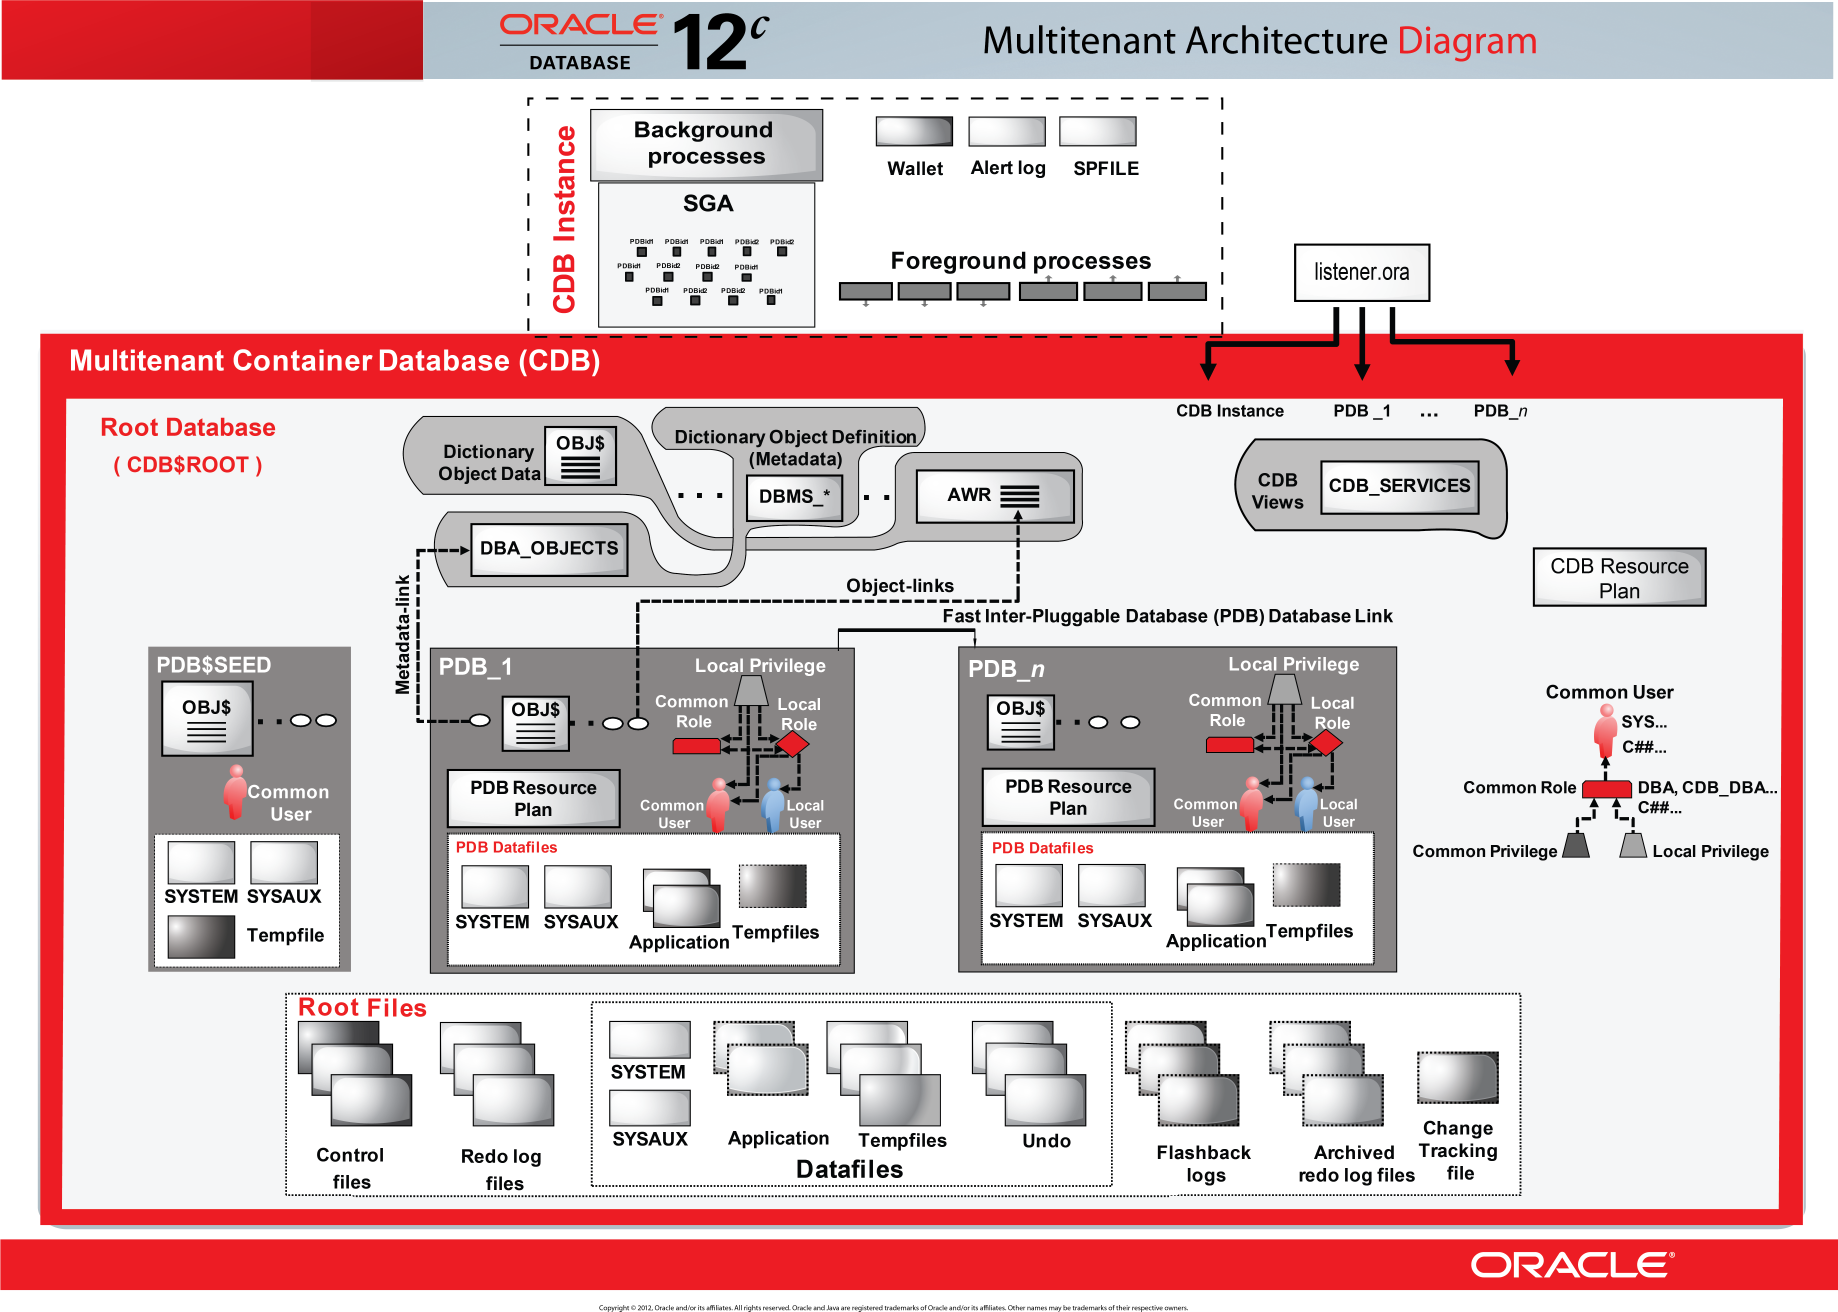 Oracle Database 12c Interactive Quick Reference Intranet Network Diagram Photo Album Diagrams